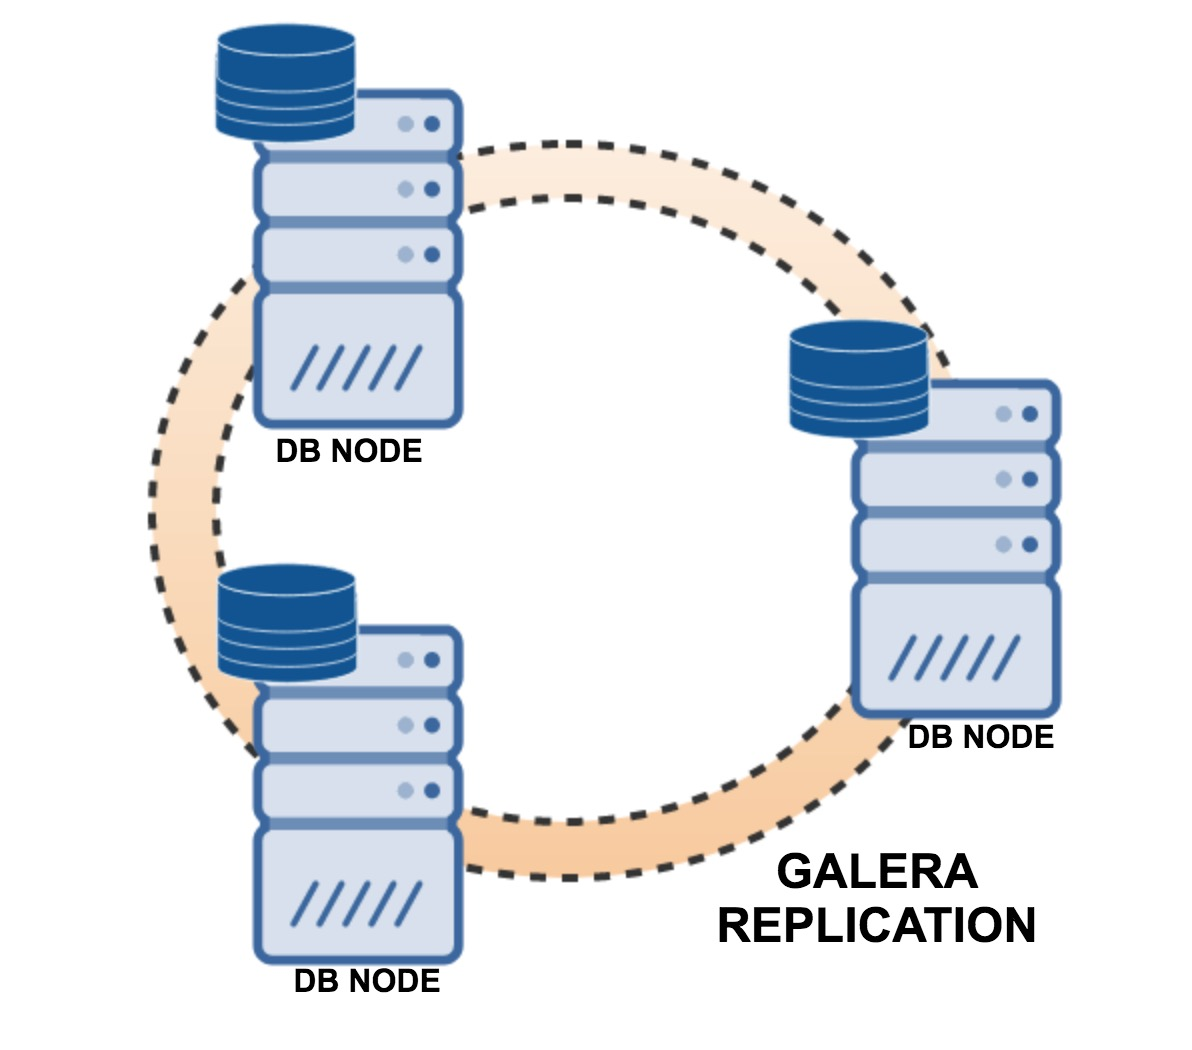 Galera replication, disks attached to database nodes